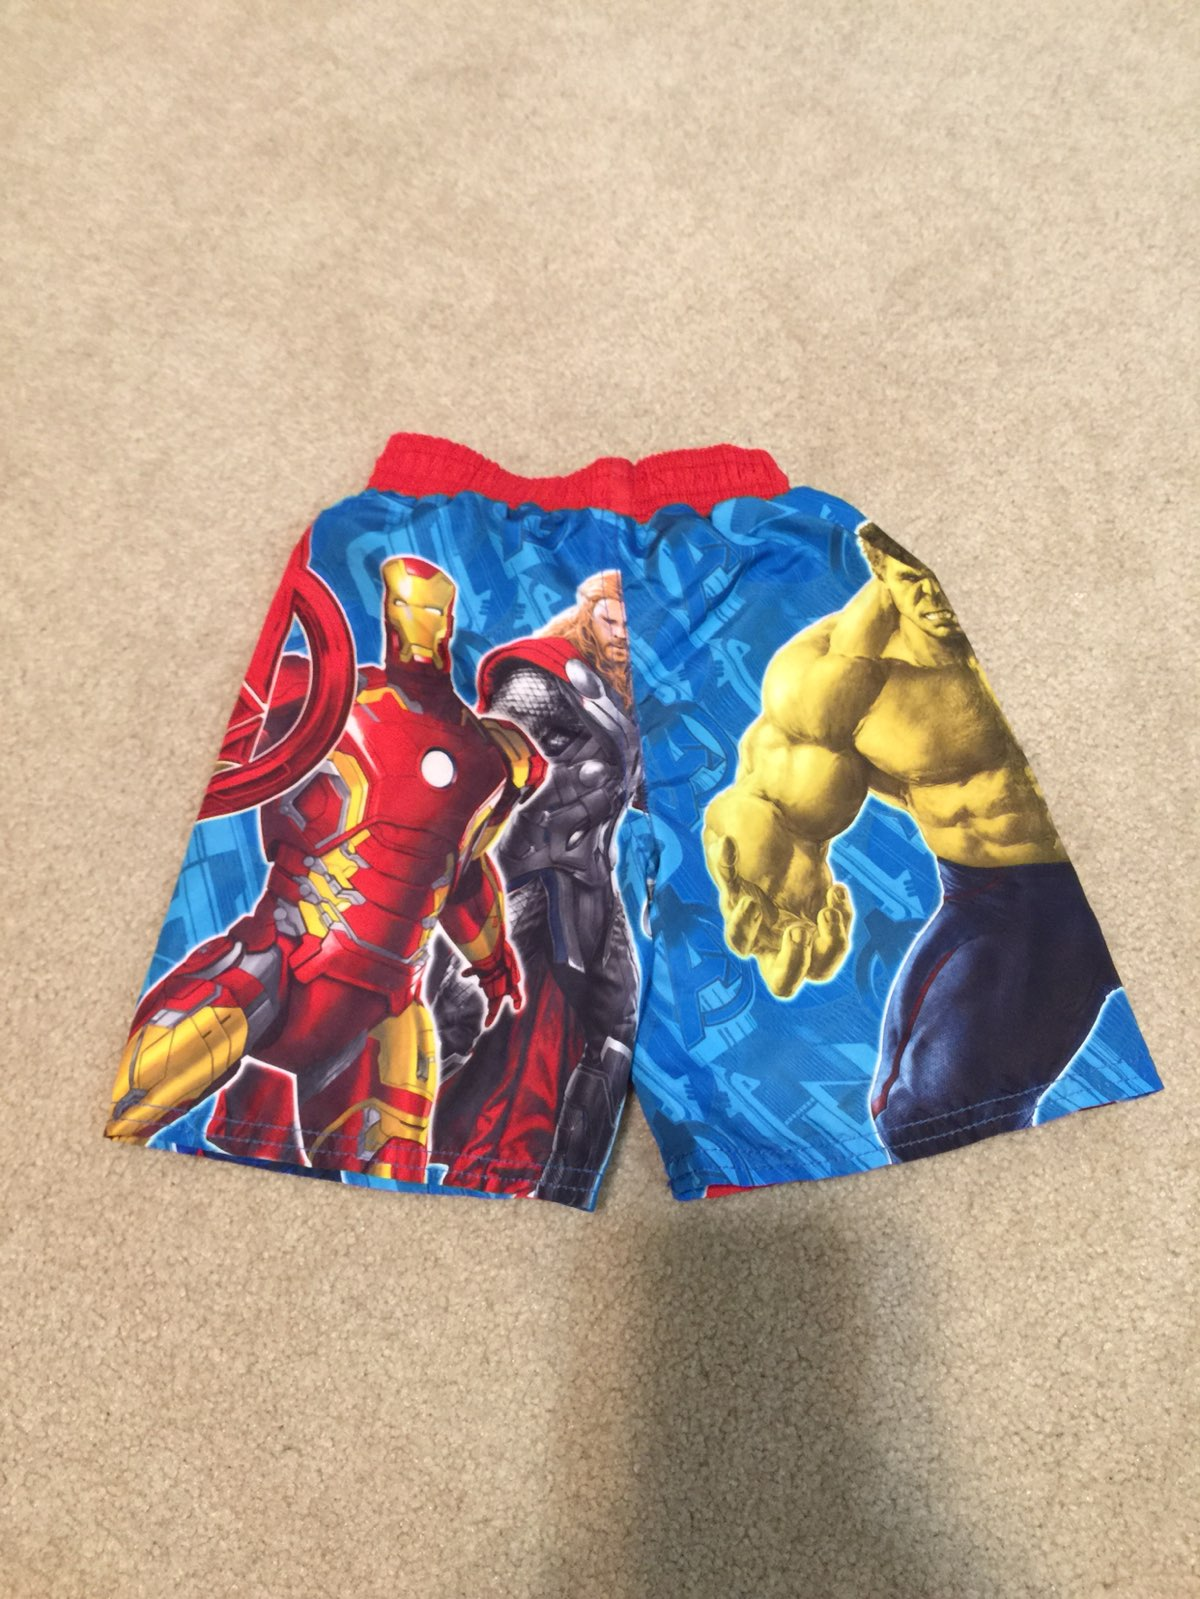 Marvel Avengers Boys Swimsuit 3T